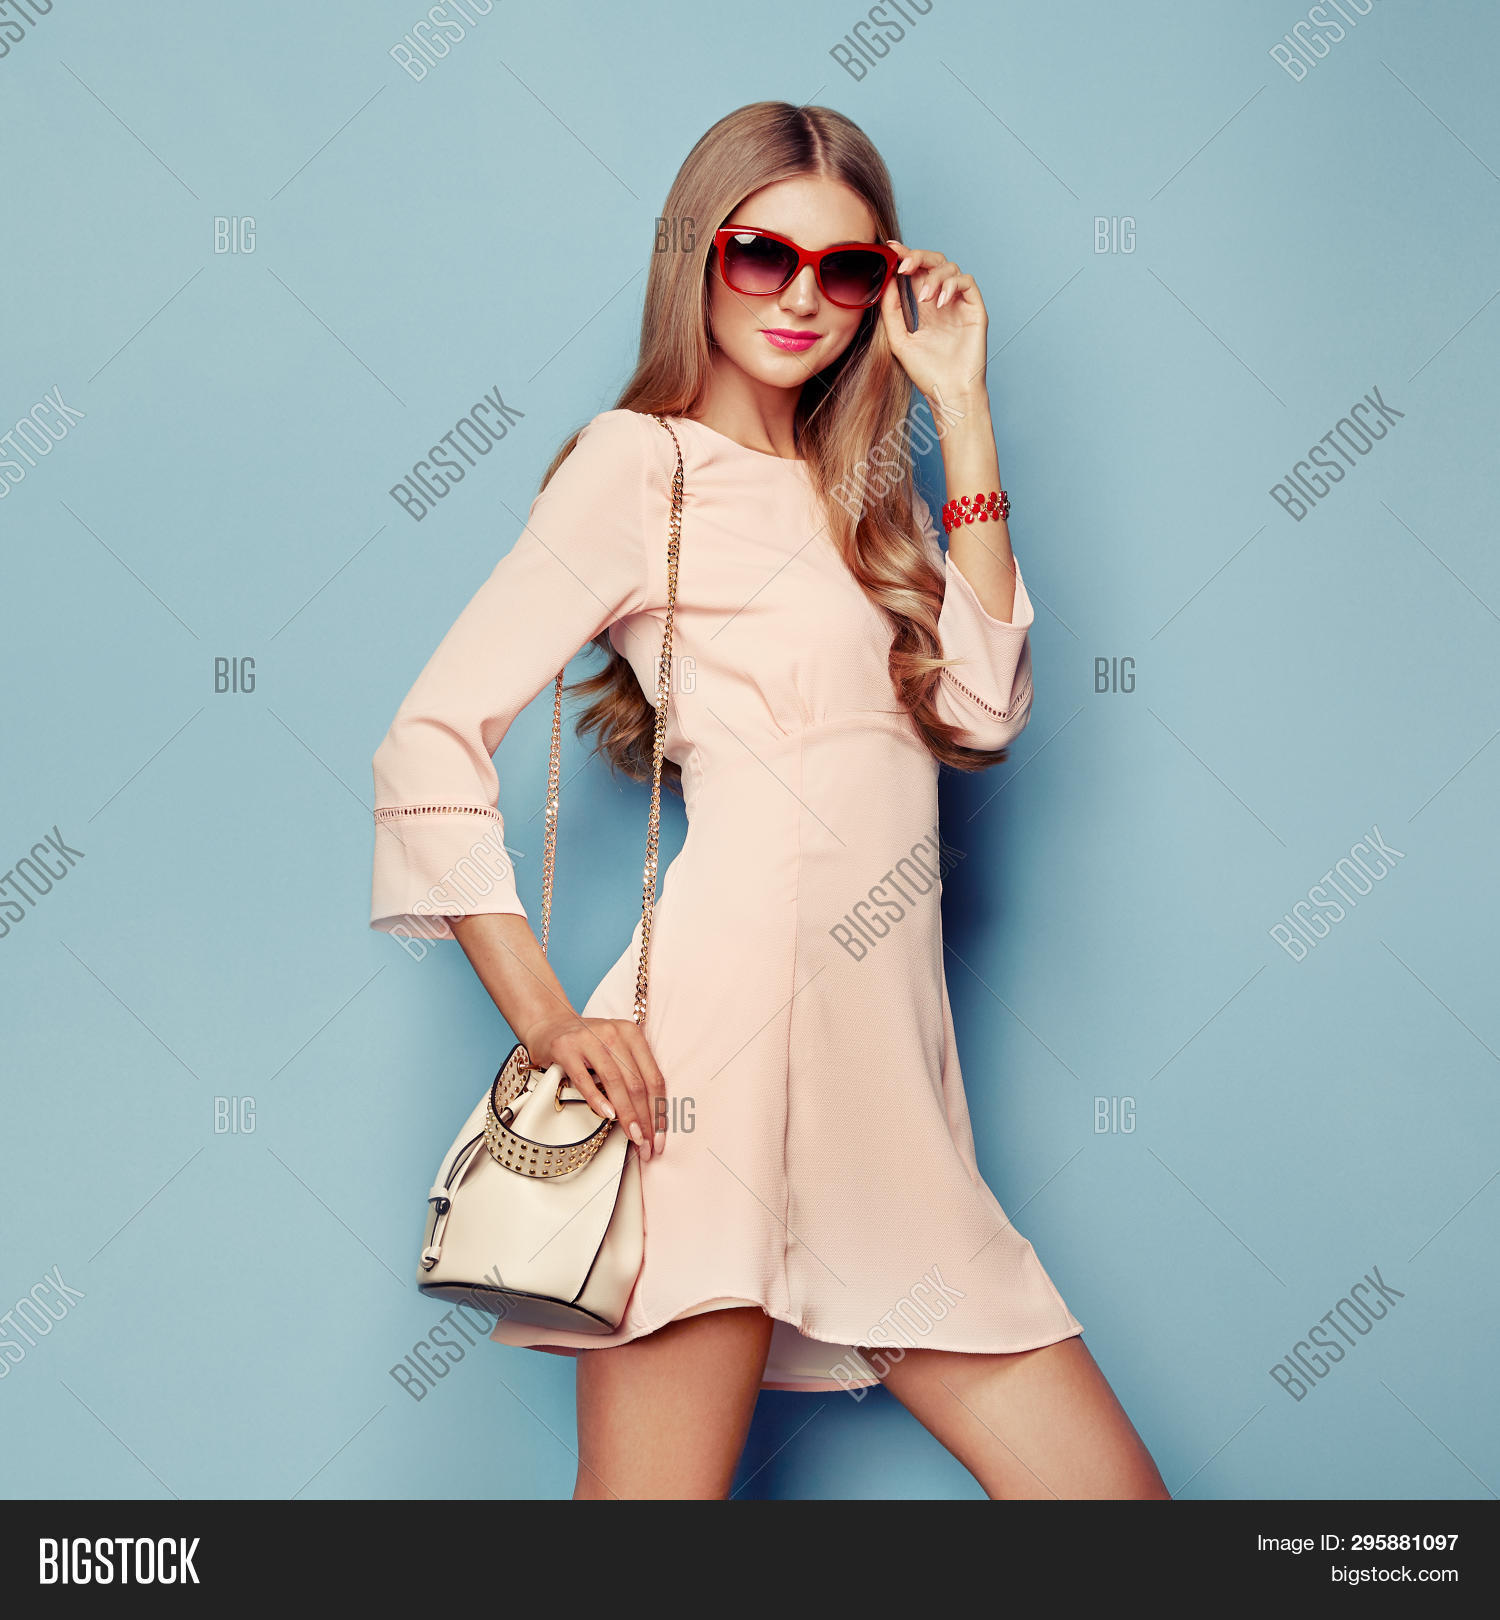 accessories,attractive,background,beautiful,beauty,blonde,blue,boutique,clothing,clutch,color,coral,dress,elegant,fashion,fashionable,female,figure,girl,glamour,glasses,grace,hair,hairstyle,handbag,happy,lady,lifestyle,luxurious,makeup,manicure,model,outfit,pink,portrait,posing,sale,shopping,smile,spring,studio,stylish,summer,sunglasses,urban,vogue,woman,womanly,young